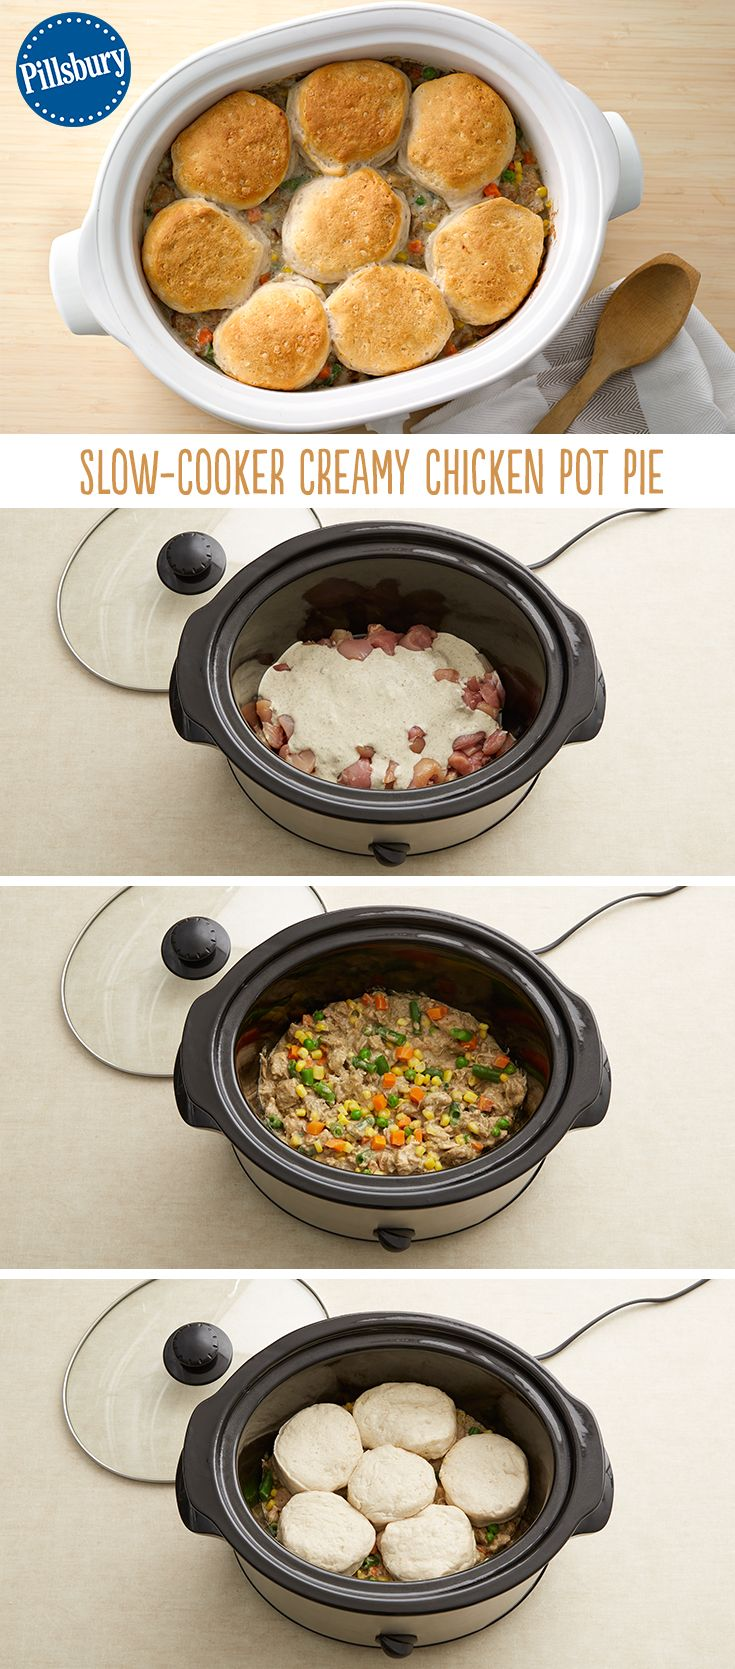 Want to make creamy Chicken Pot Pie without the hassle? This biscuit-topped beauty delivers on that and more! Easily combine your favorite pot pie ingredients for a comforting dinner when you get home. It's an easy recipe that your kids will love during the weekday.